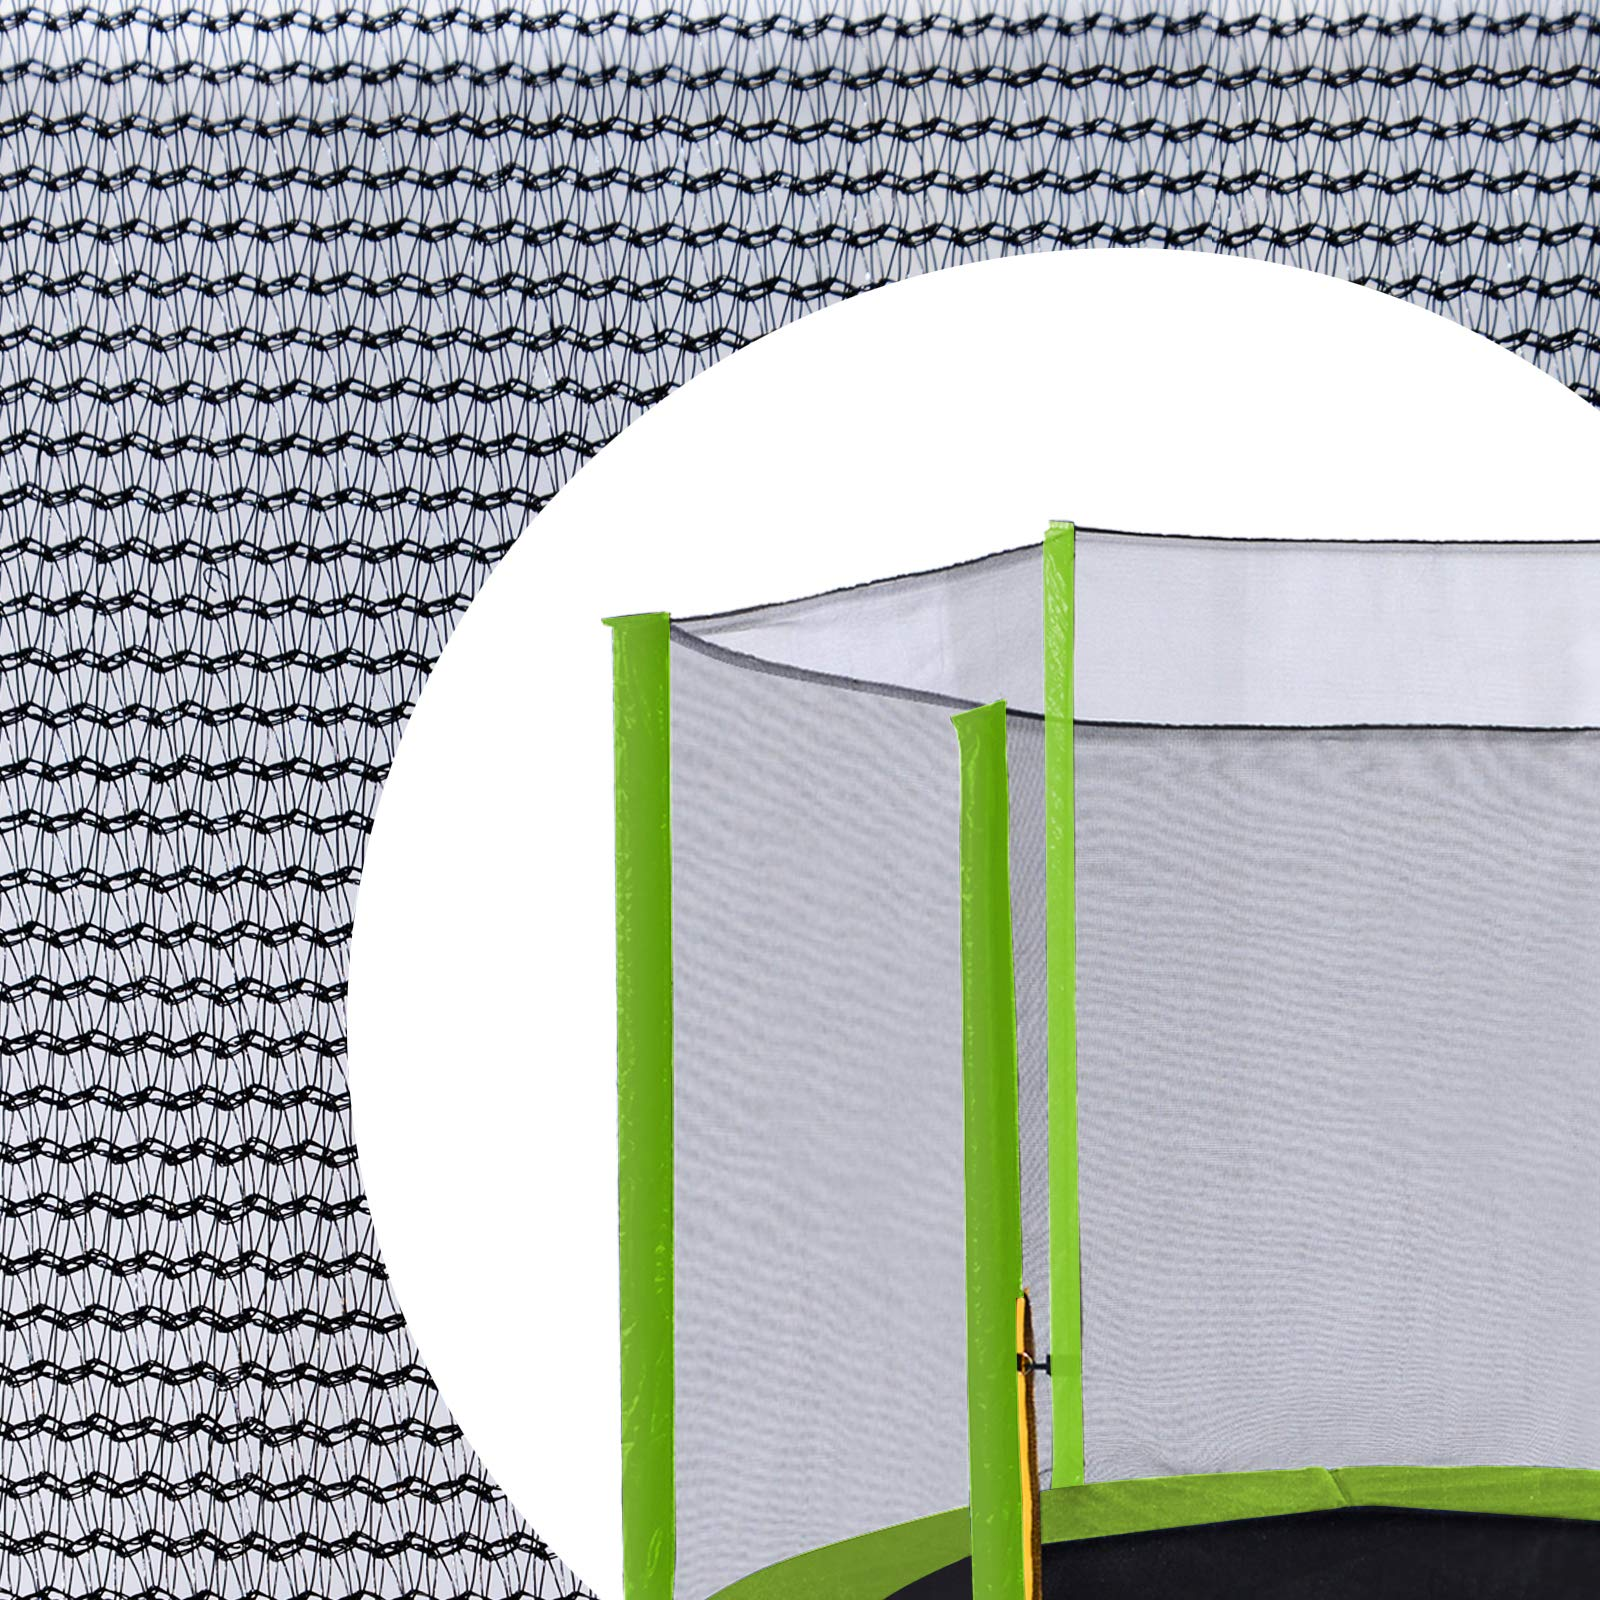 Exacme 15 Foot Trampoline Replacement Outer Enclosure Net with 6 Light Green Sleeves, Poles Not Included, EN015LG by Exacme